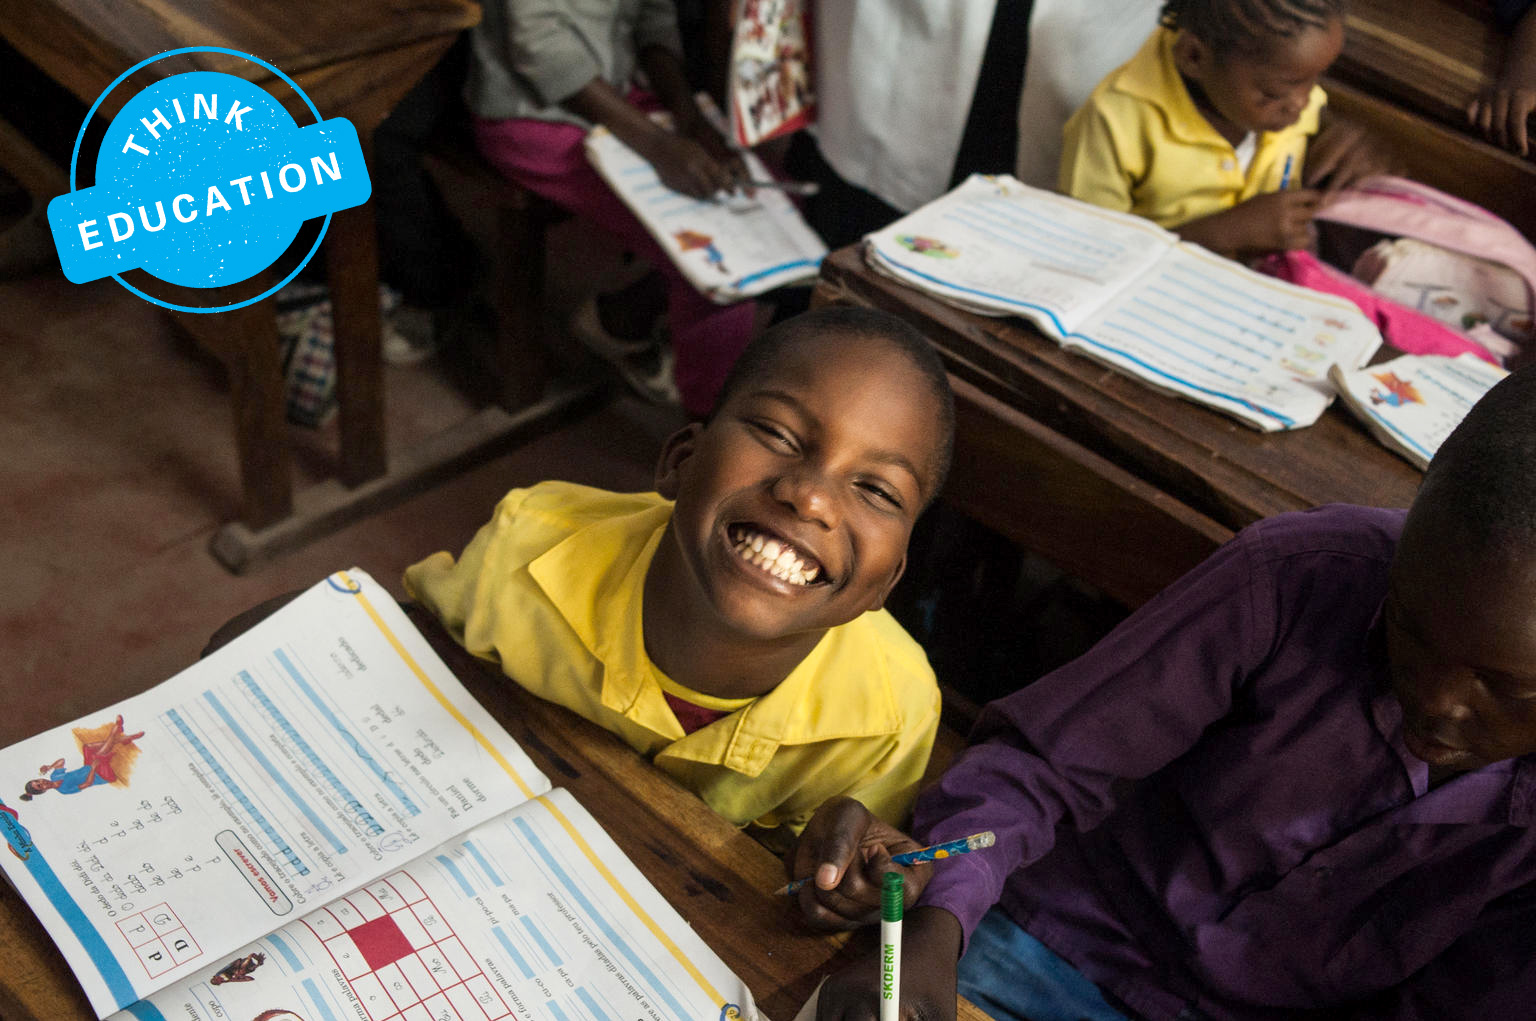 A young child in a classroom sitting at his desk clutching a pencil with an open textbook in front of him looks up and smiles widely.